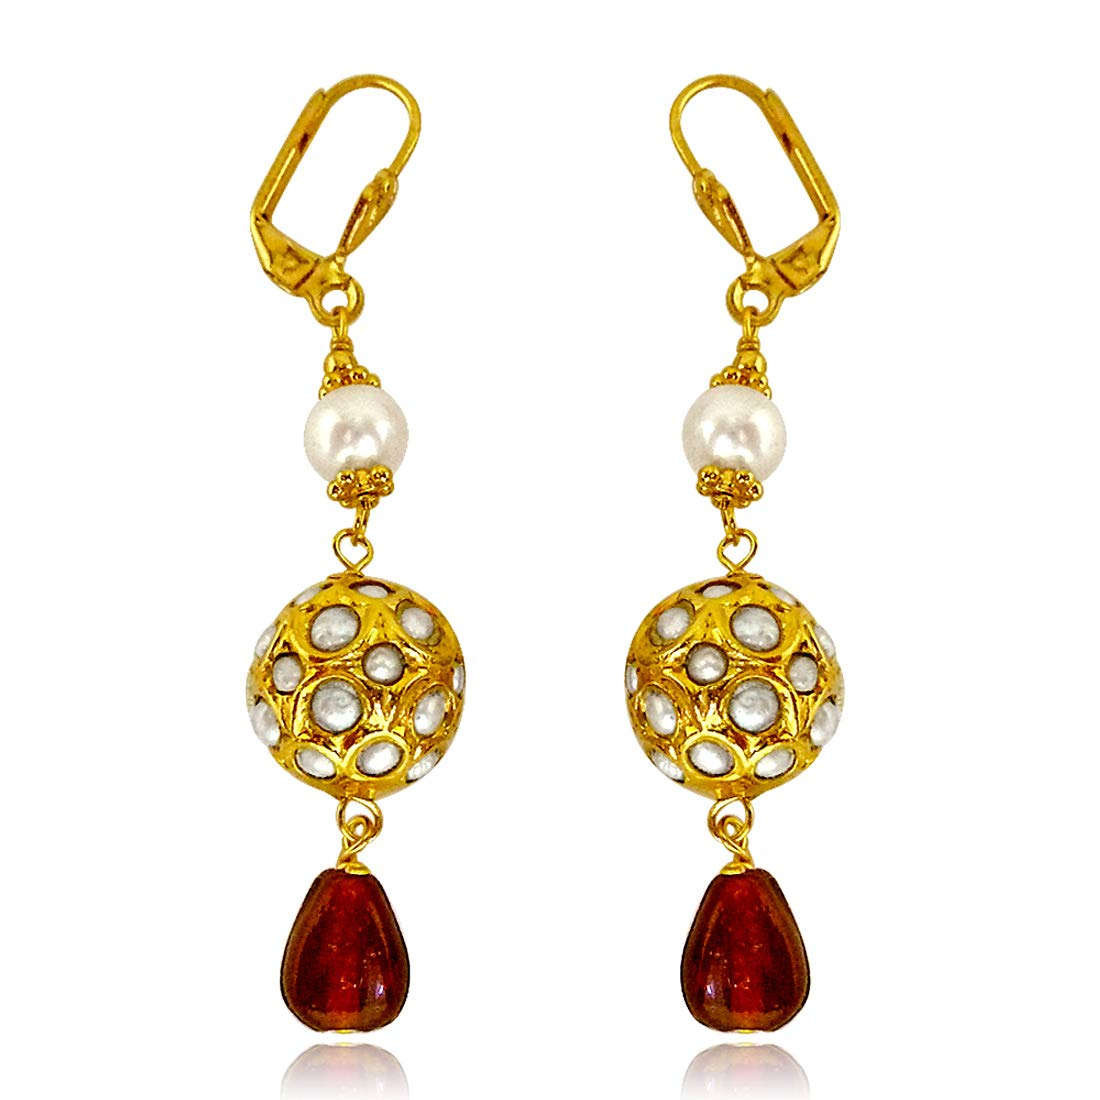 Round Kundan Beads & Red Coloured stone hanging Earrings for Women (SE133)